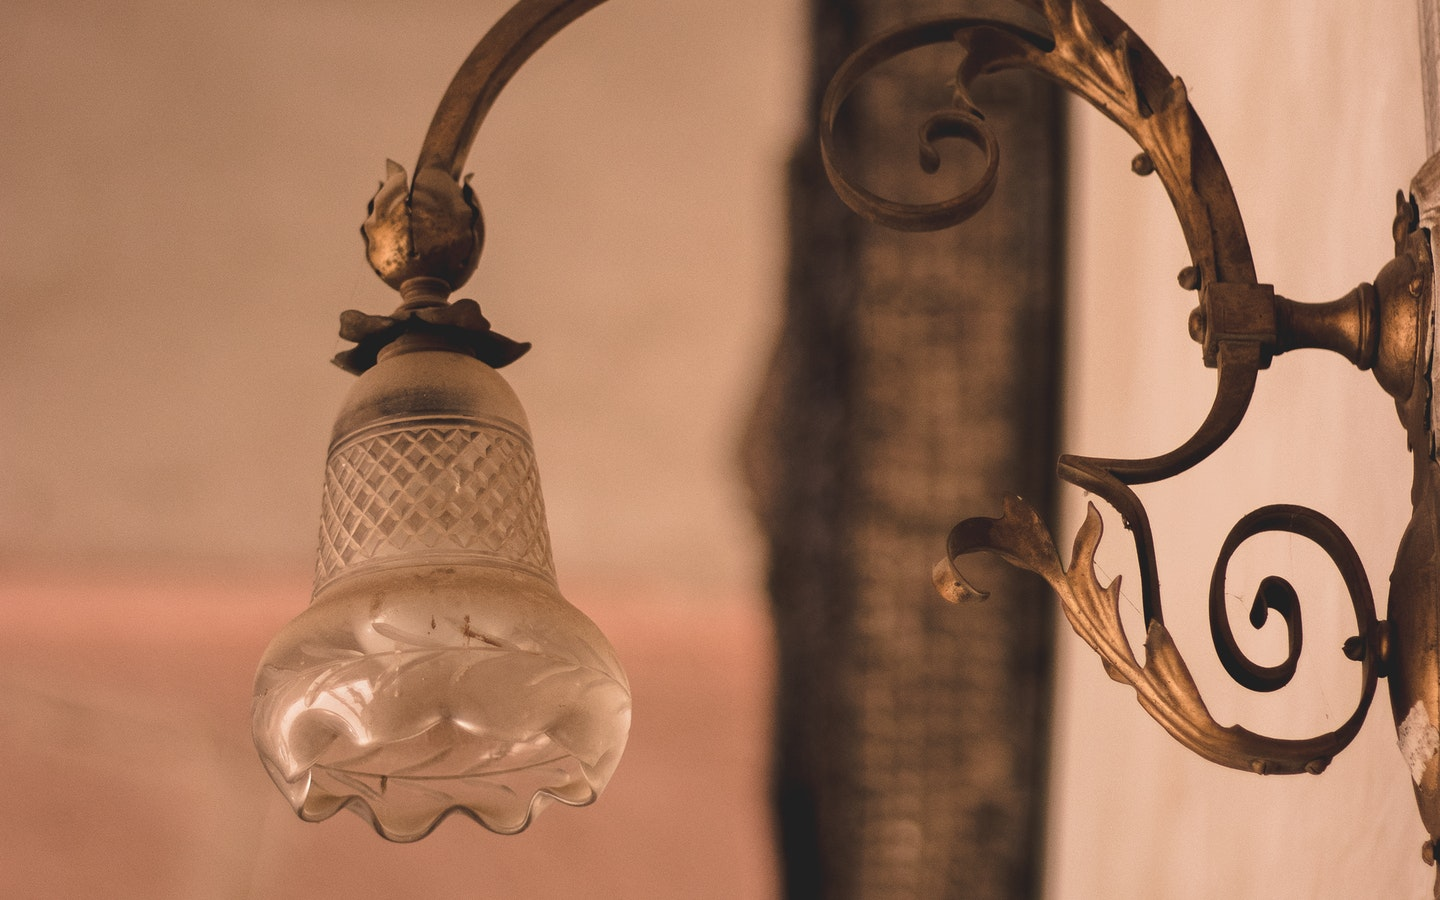 Upgrade your home by getting your desired light fixtures.